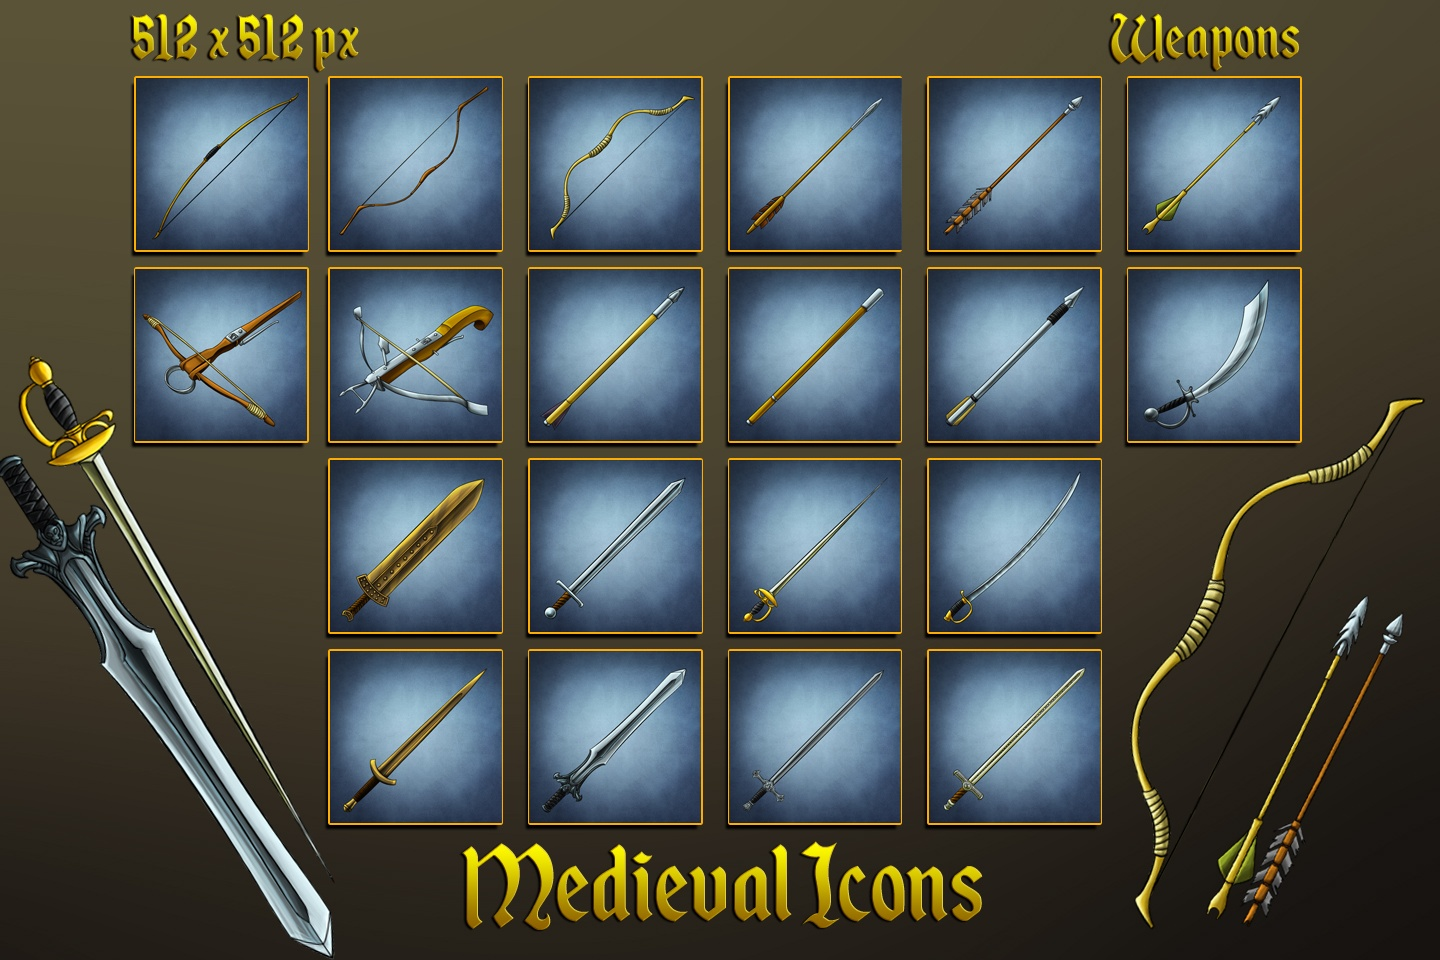 Medieval Icons: Swords, Bows, Arrows and Bolts